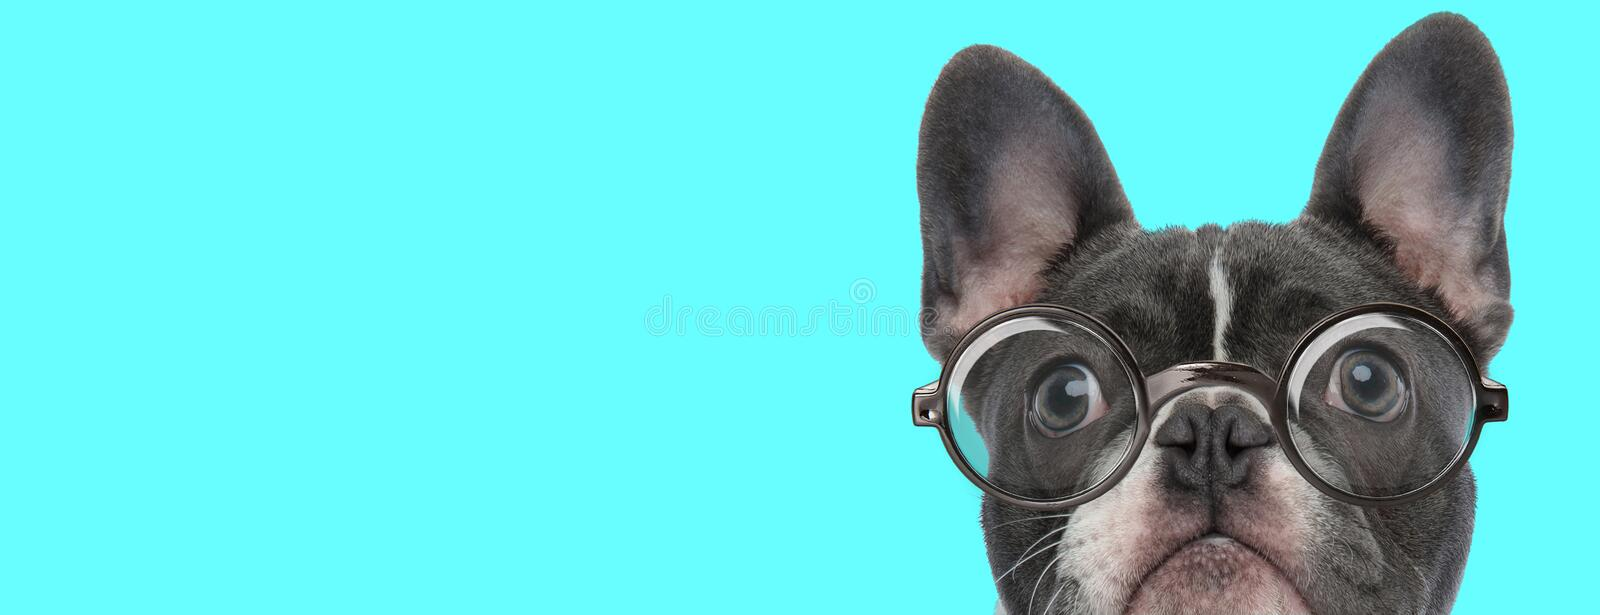 Cute nerdy French Bulldog dog with eyeglasses is looking up stock photo